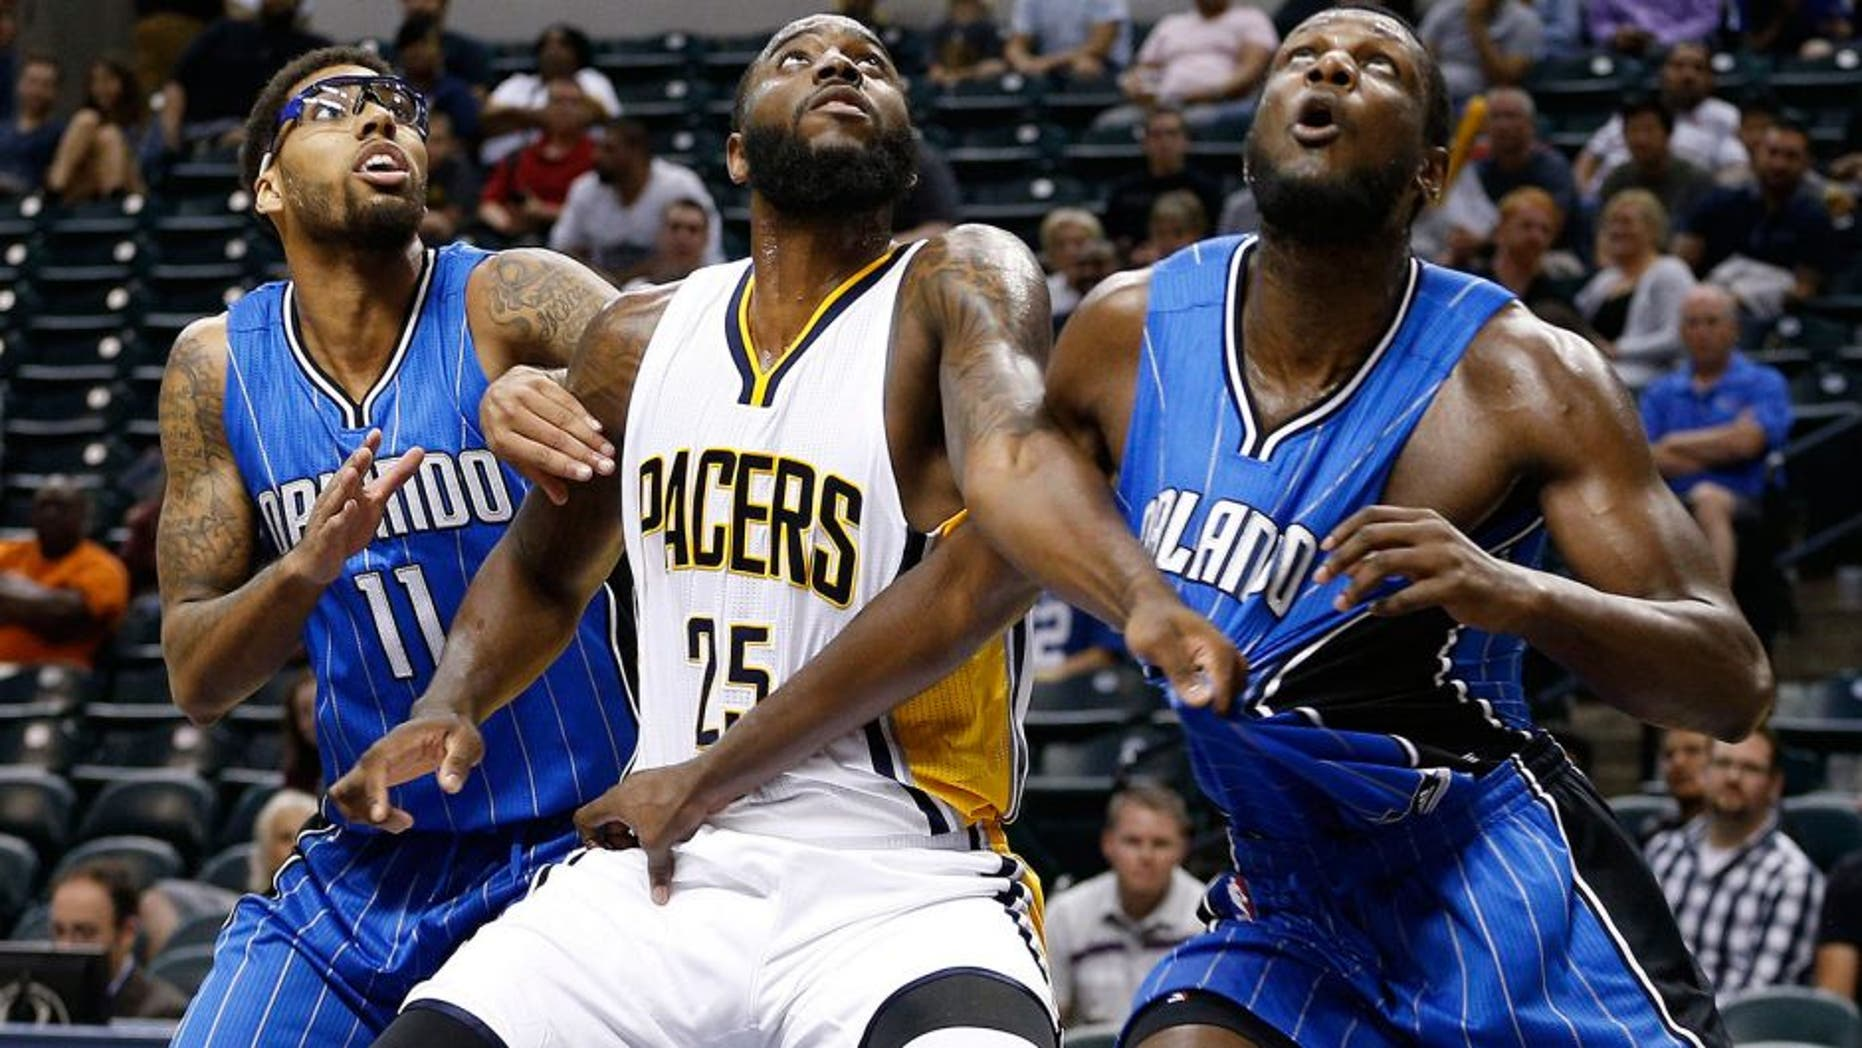 Oct 8, 2015; Indianapolis, IN, USA; Indiana Pacers forward Rakeem Christmas (25) battles for position with Orlando Magic center Nnanna Egwu (21) and forward Devyn Marble (11) at Bankers Life Fieldhouse. The Pacers won 97-92. Mandatory Credit: Brian Spurlock-USA TODAY Sports